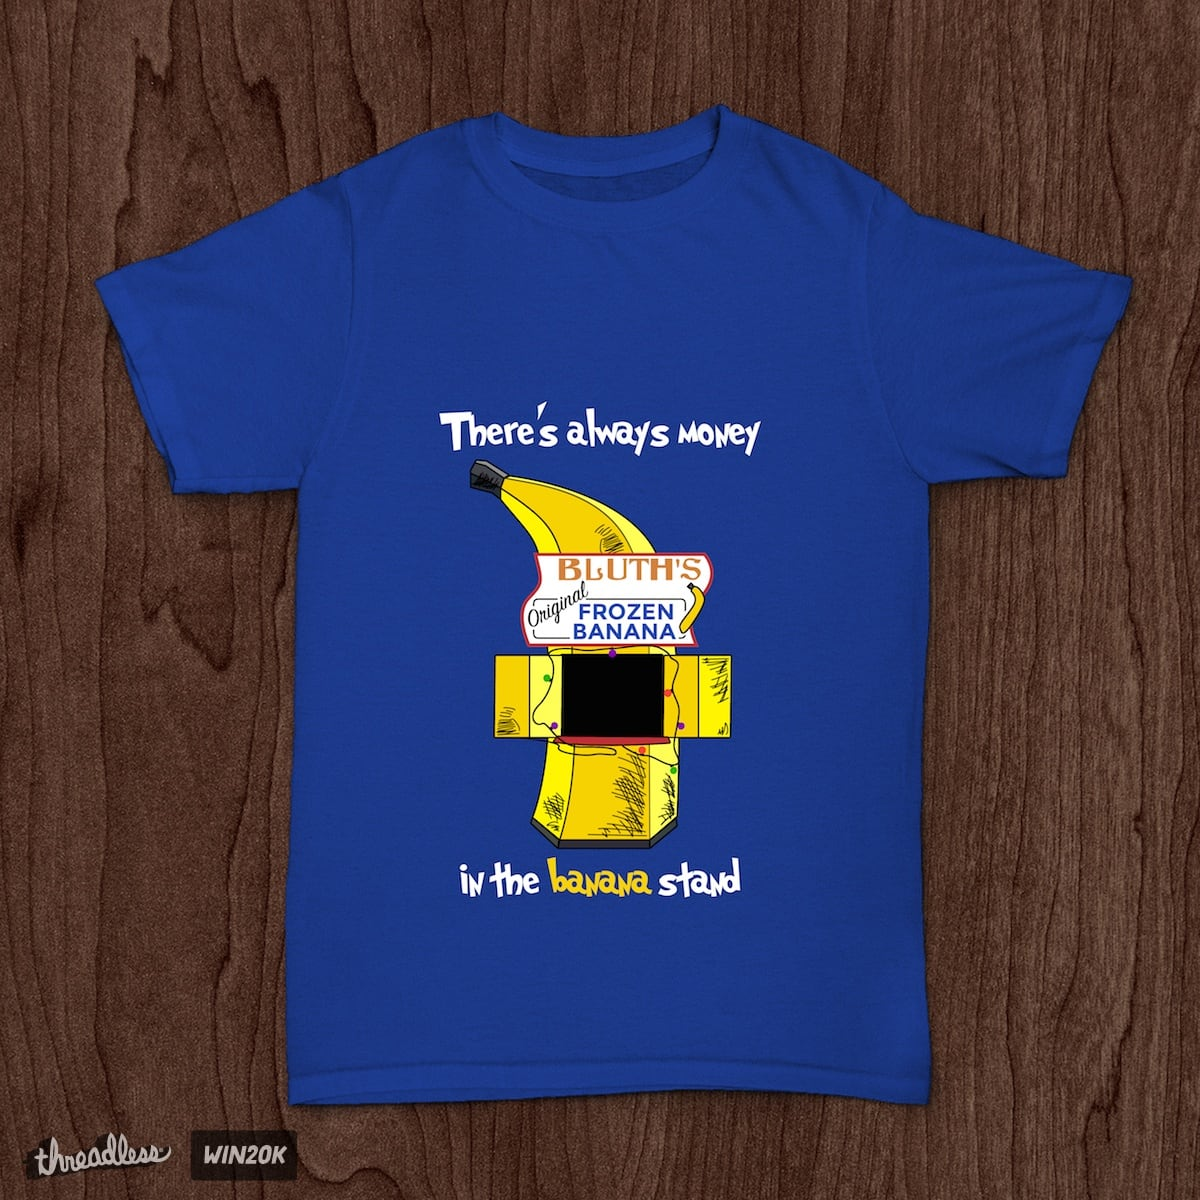 There's always money in the banana stand by jgvandehey on Threadless